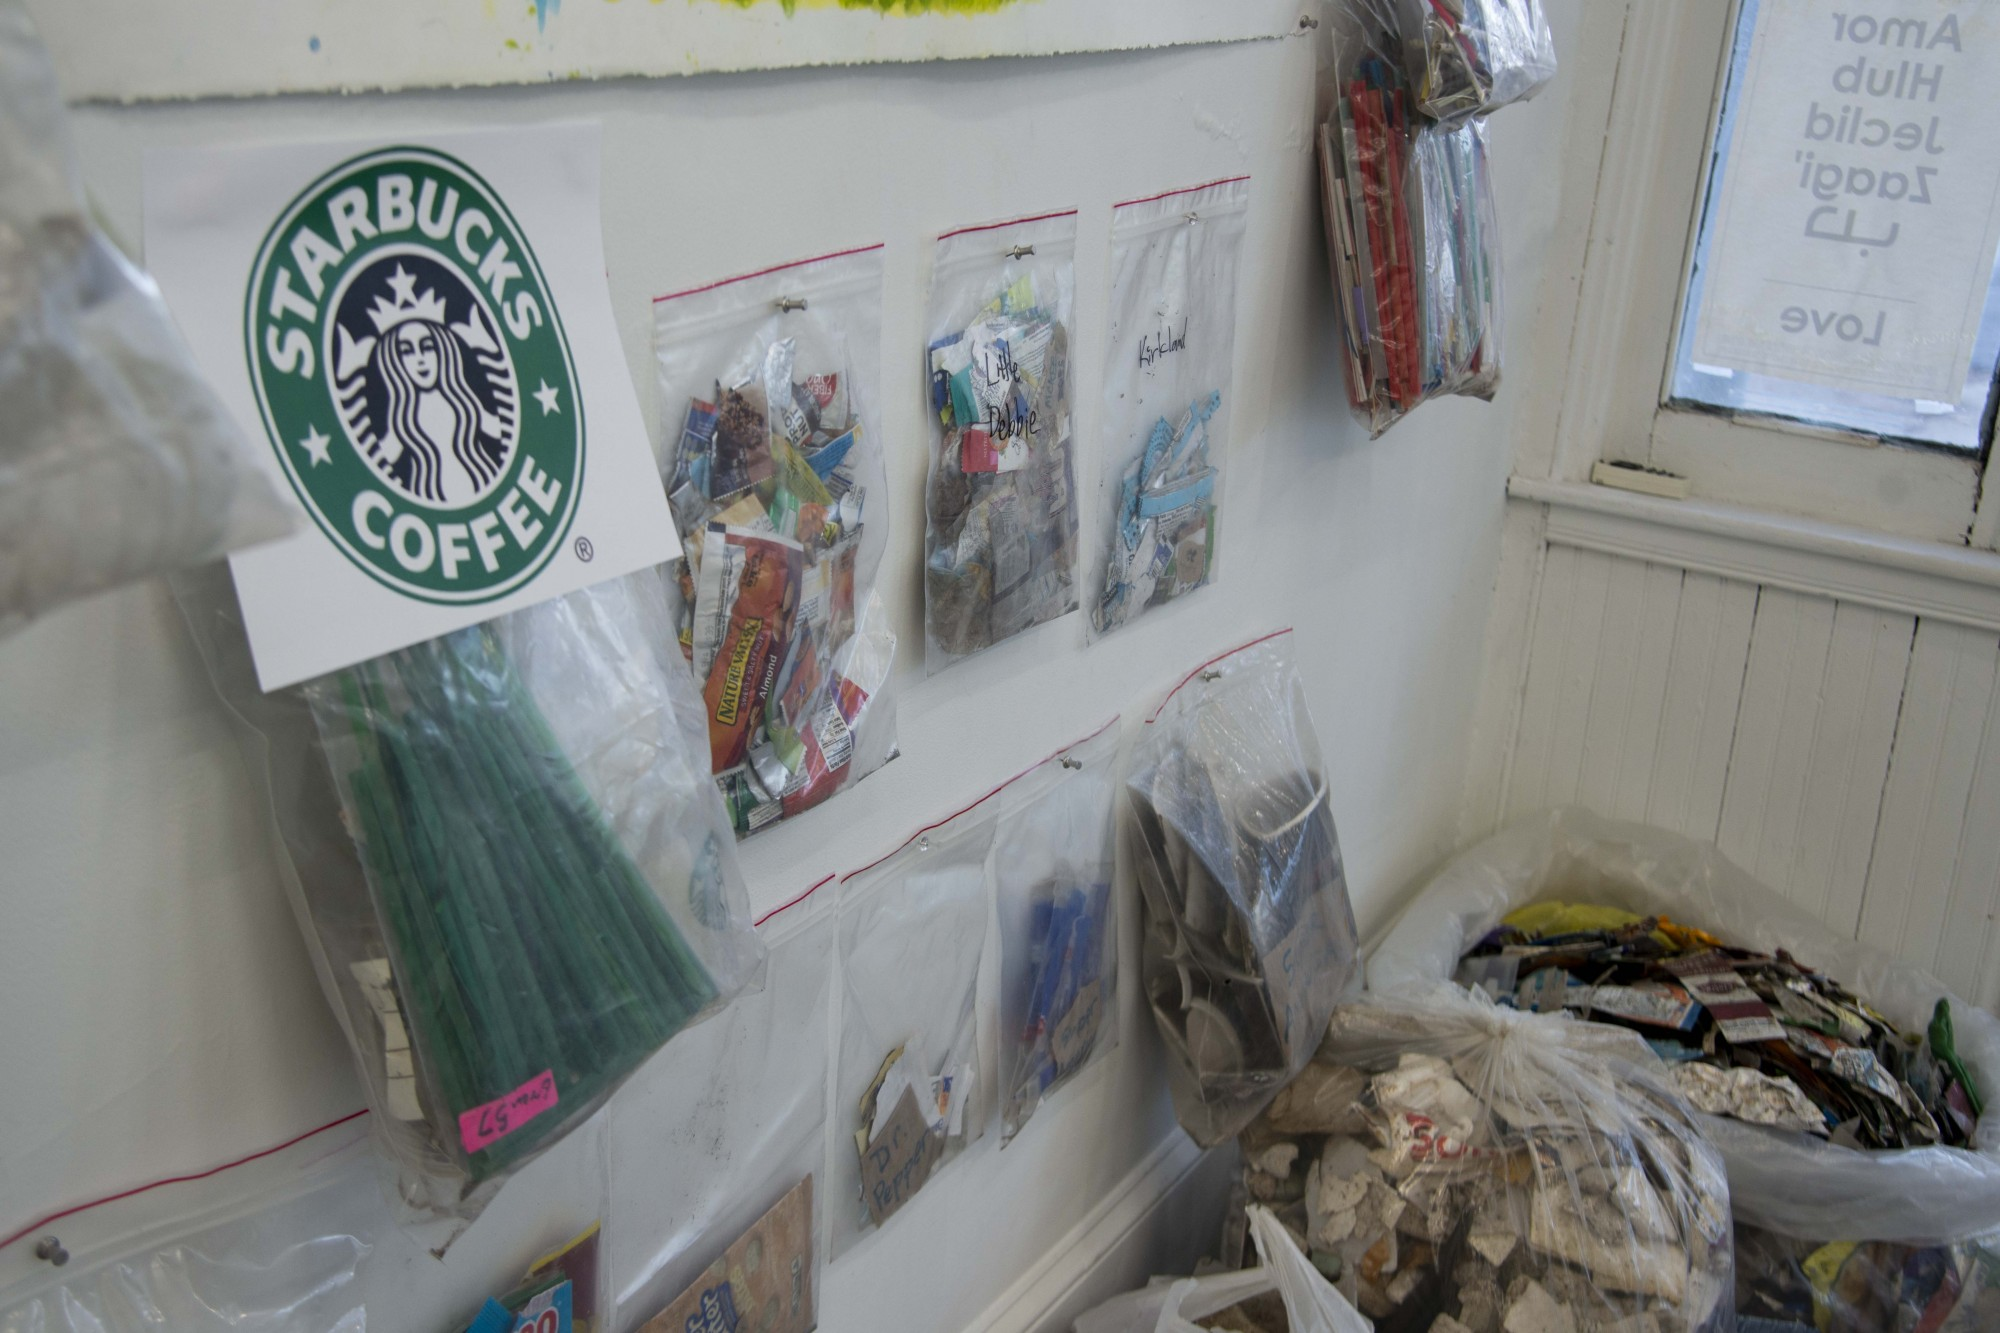 Starbucks straws and other trash removed from Lake Hiawatha sit on display at The White Page gallery in South Minneapolis on Friday, Nov. 15. Since 2015, 6,800 pounds of trash have been removed under Sean Connaughty's stewardship.